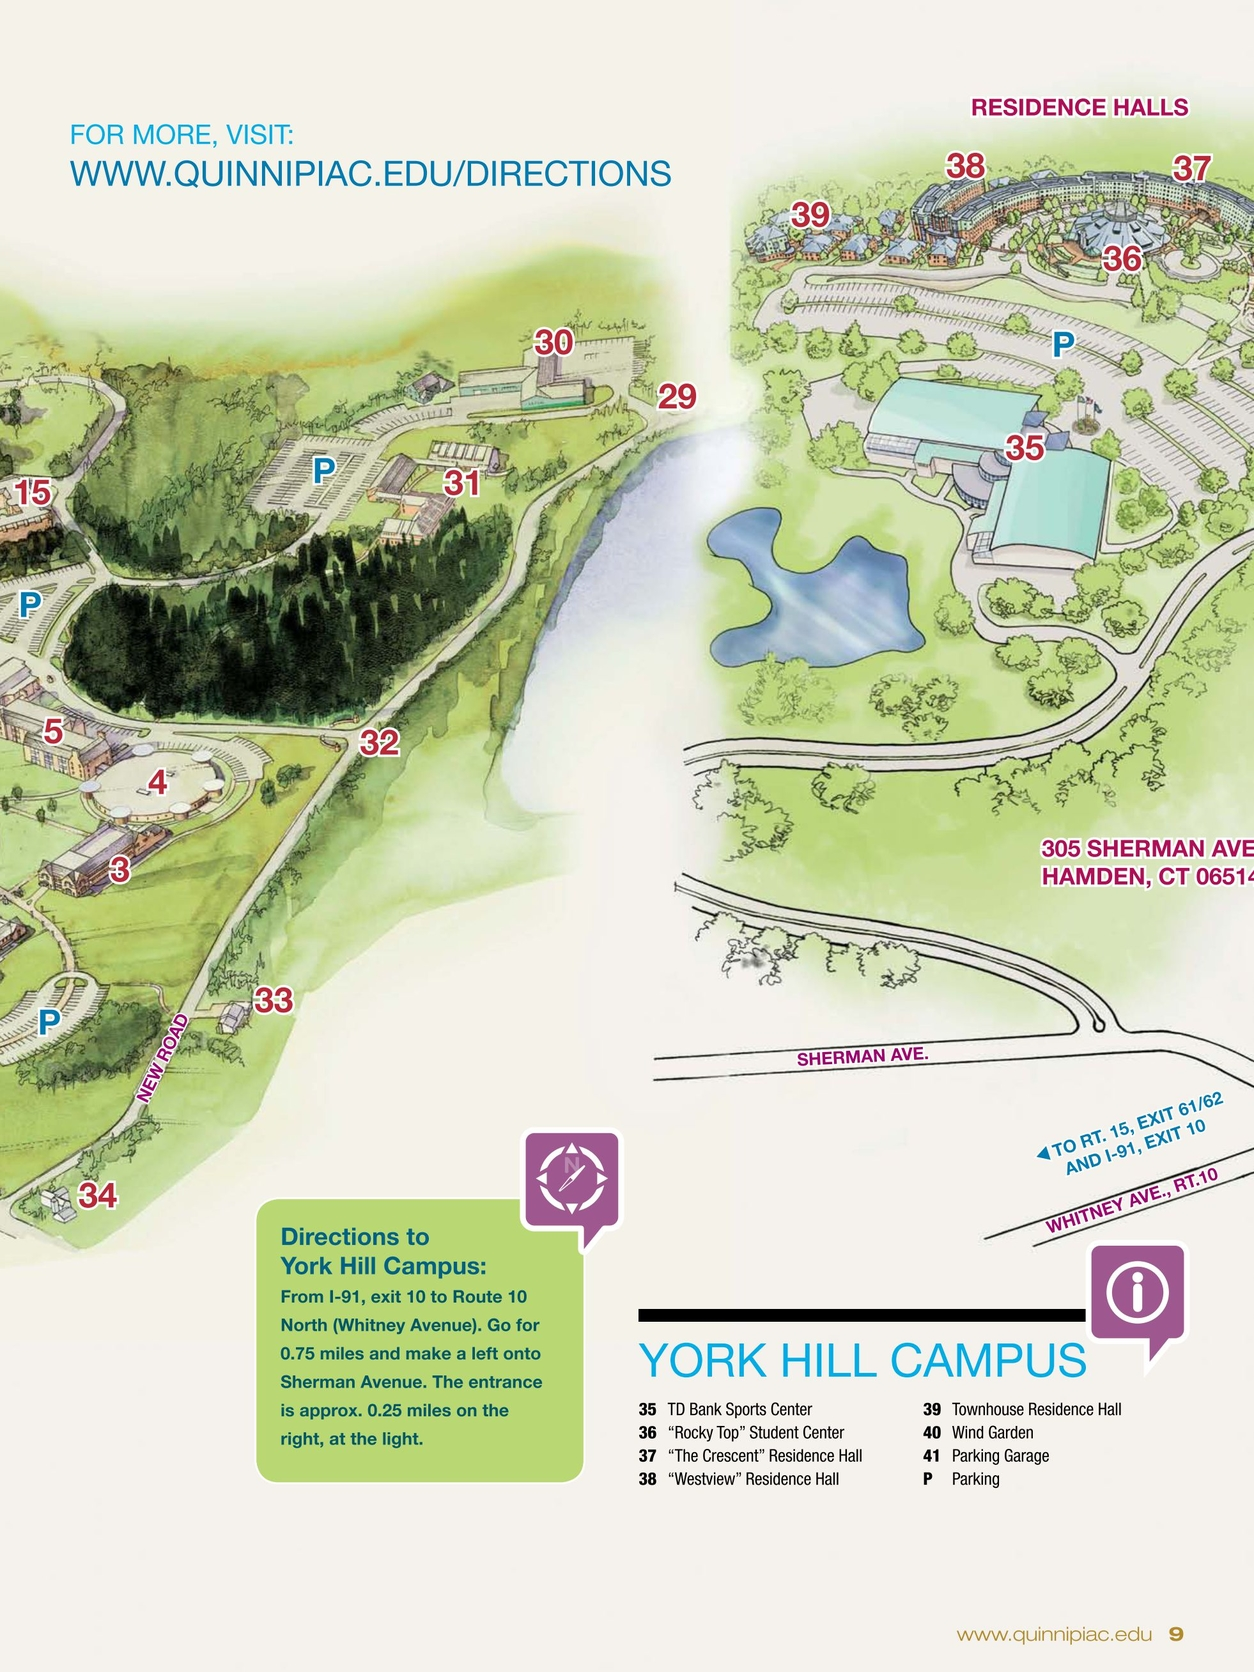 Quinnipiac University VIEWBOOK 2011 on